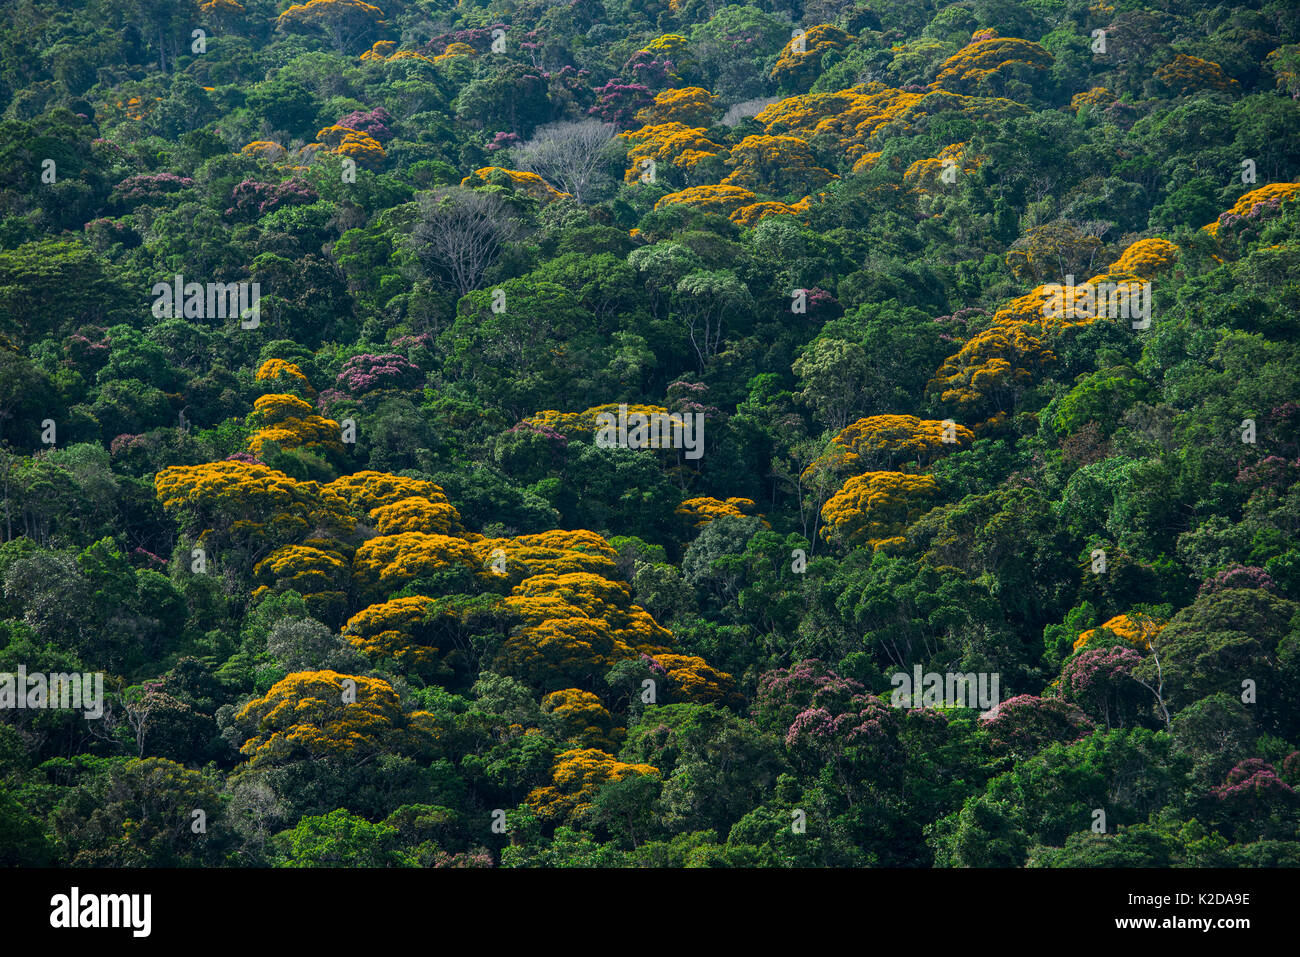 Tropical rainforest canopy with yellow flowering trees, Kupinang region, Guyana, South America - Stock Image